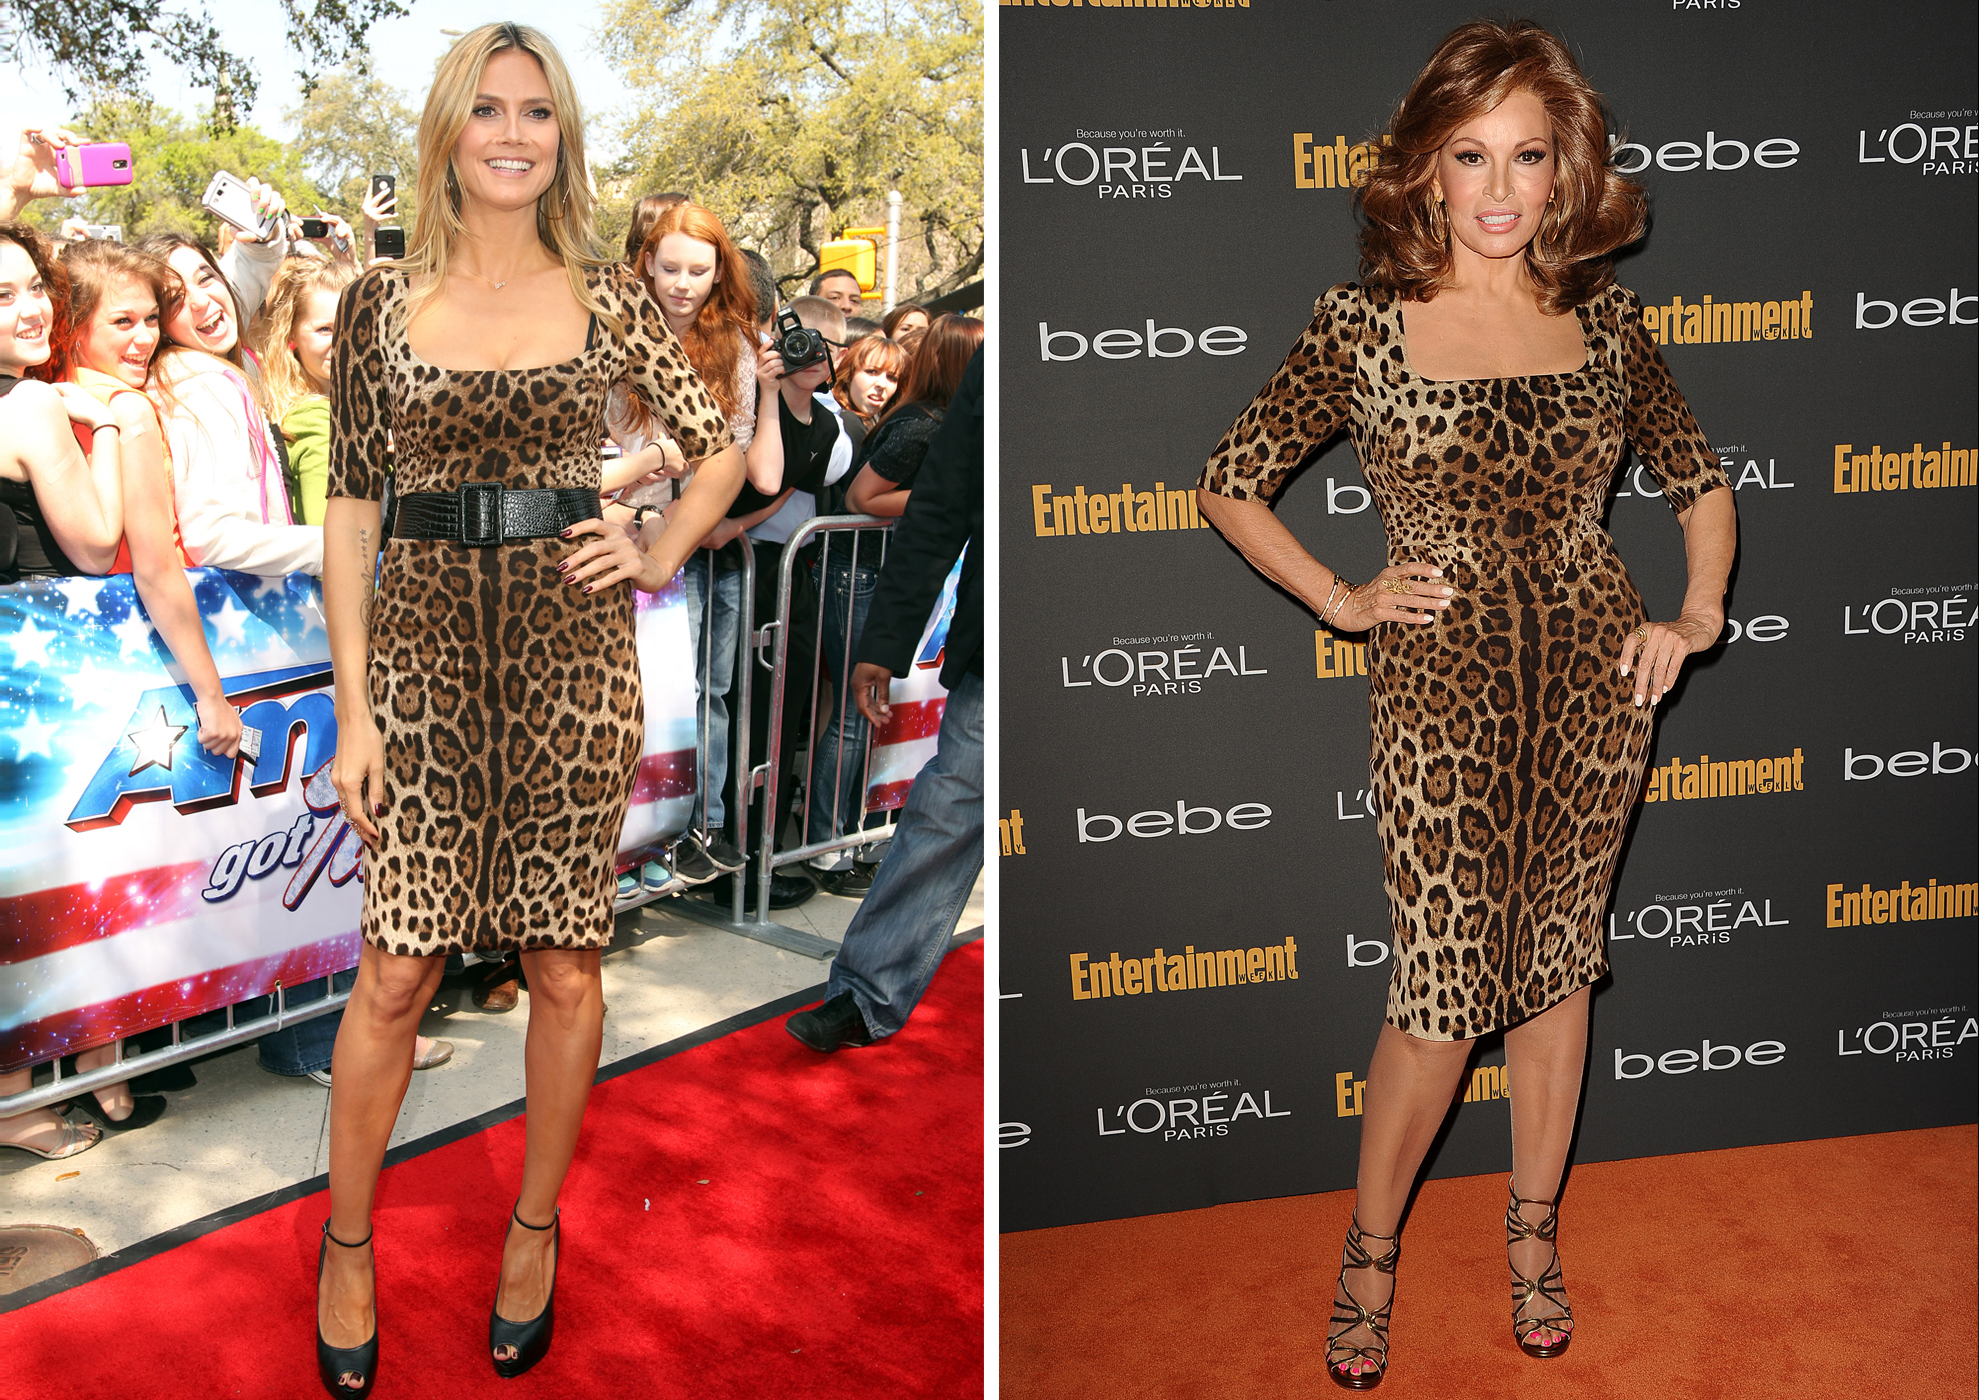 Heidi Klum vs. Raquel Welch (Splash News/FilmMagic)